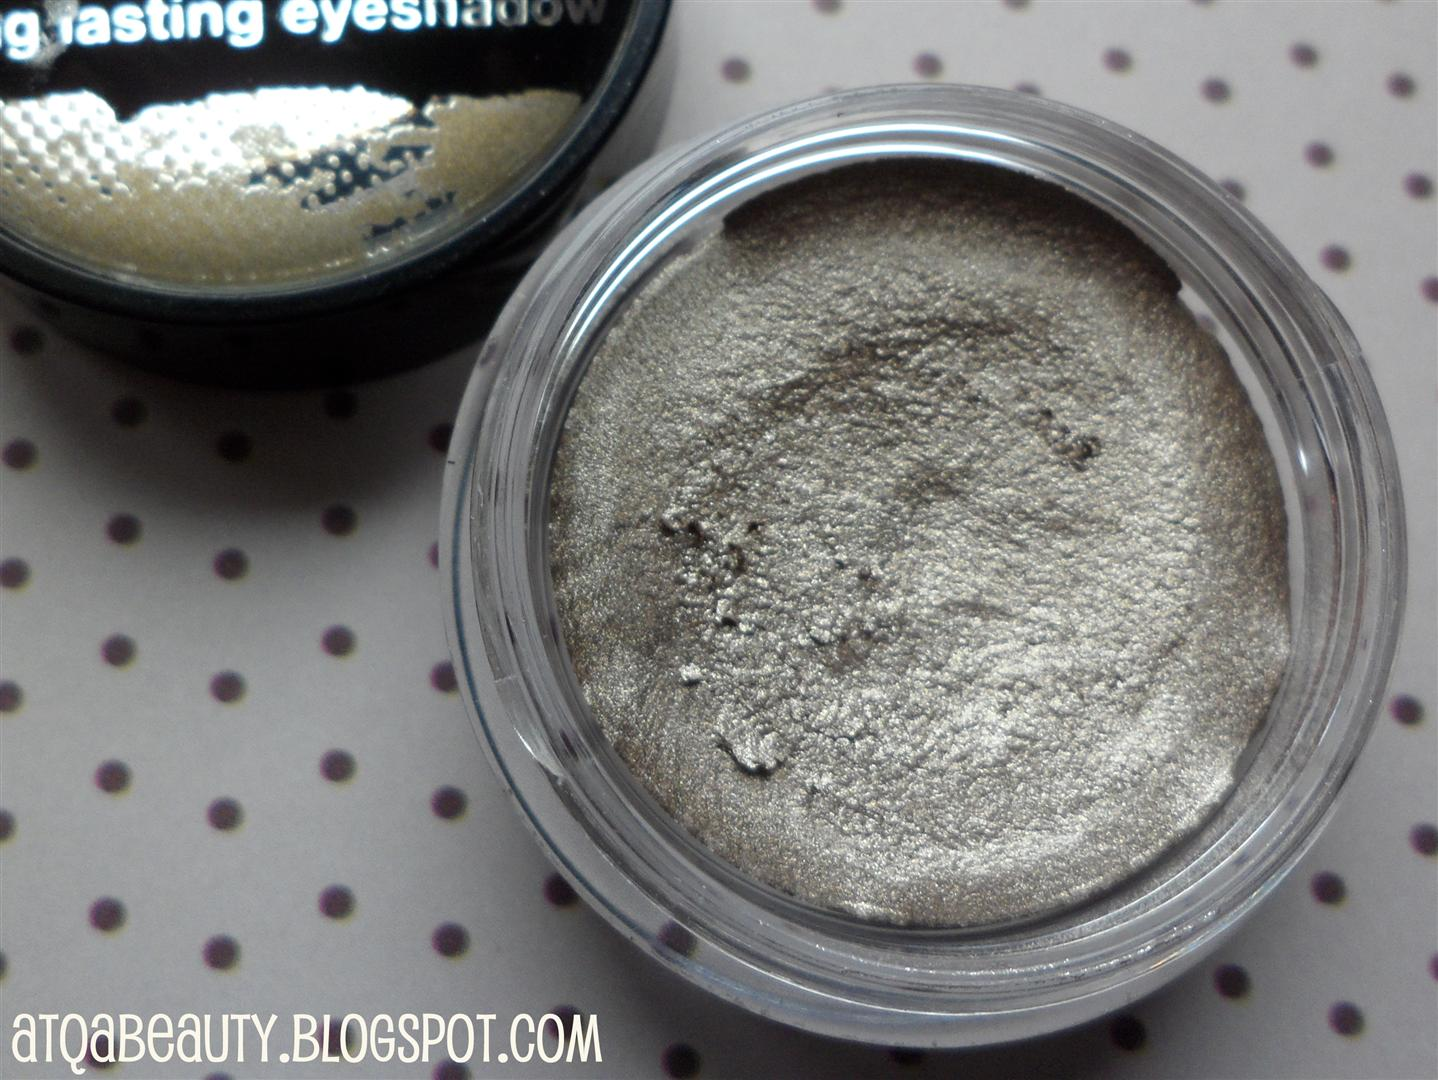 Essence, Stay All Day, Longlasting Eyeshadow, 02 Glammy Goes to...